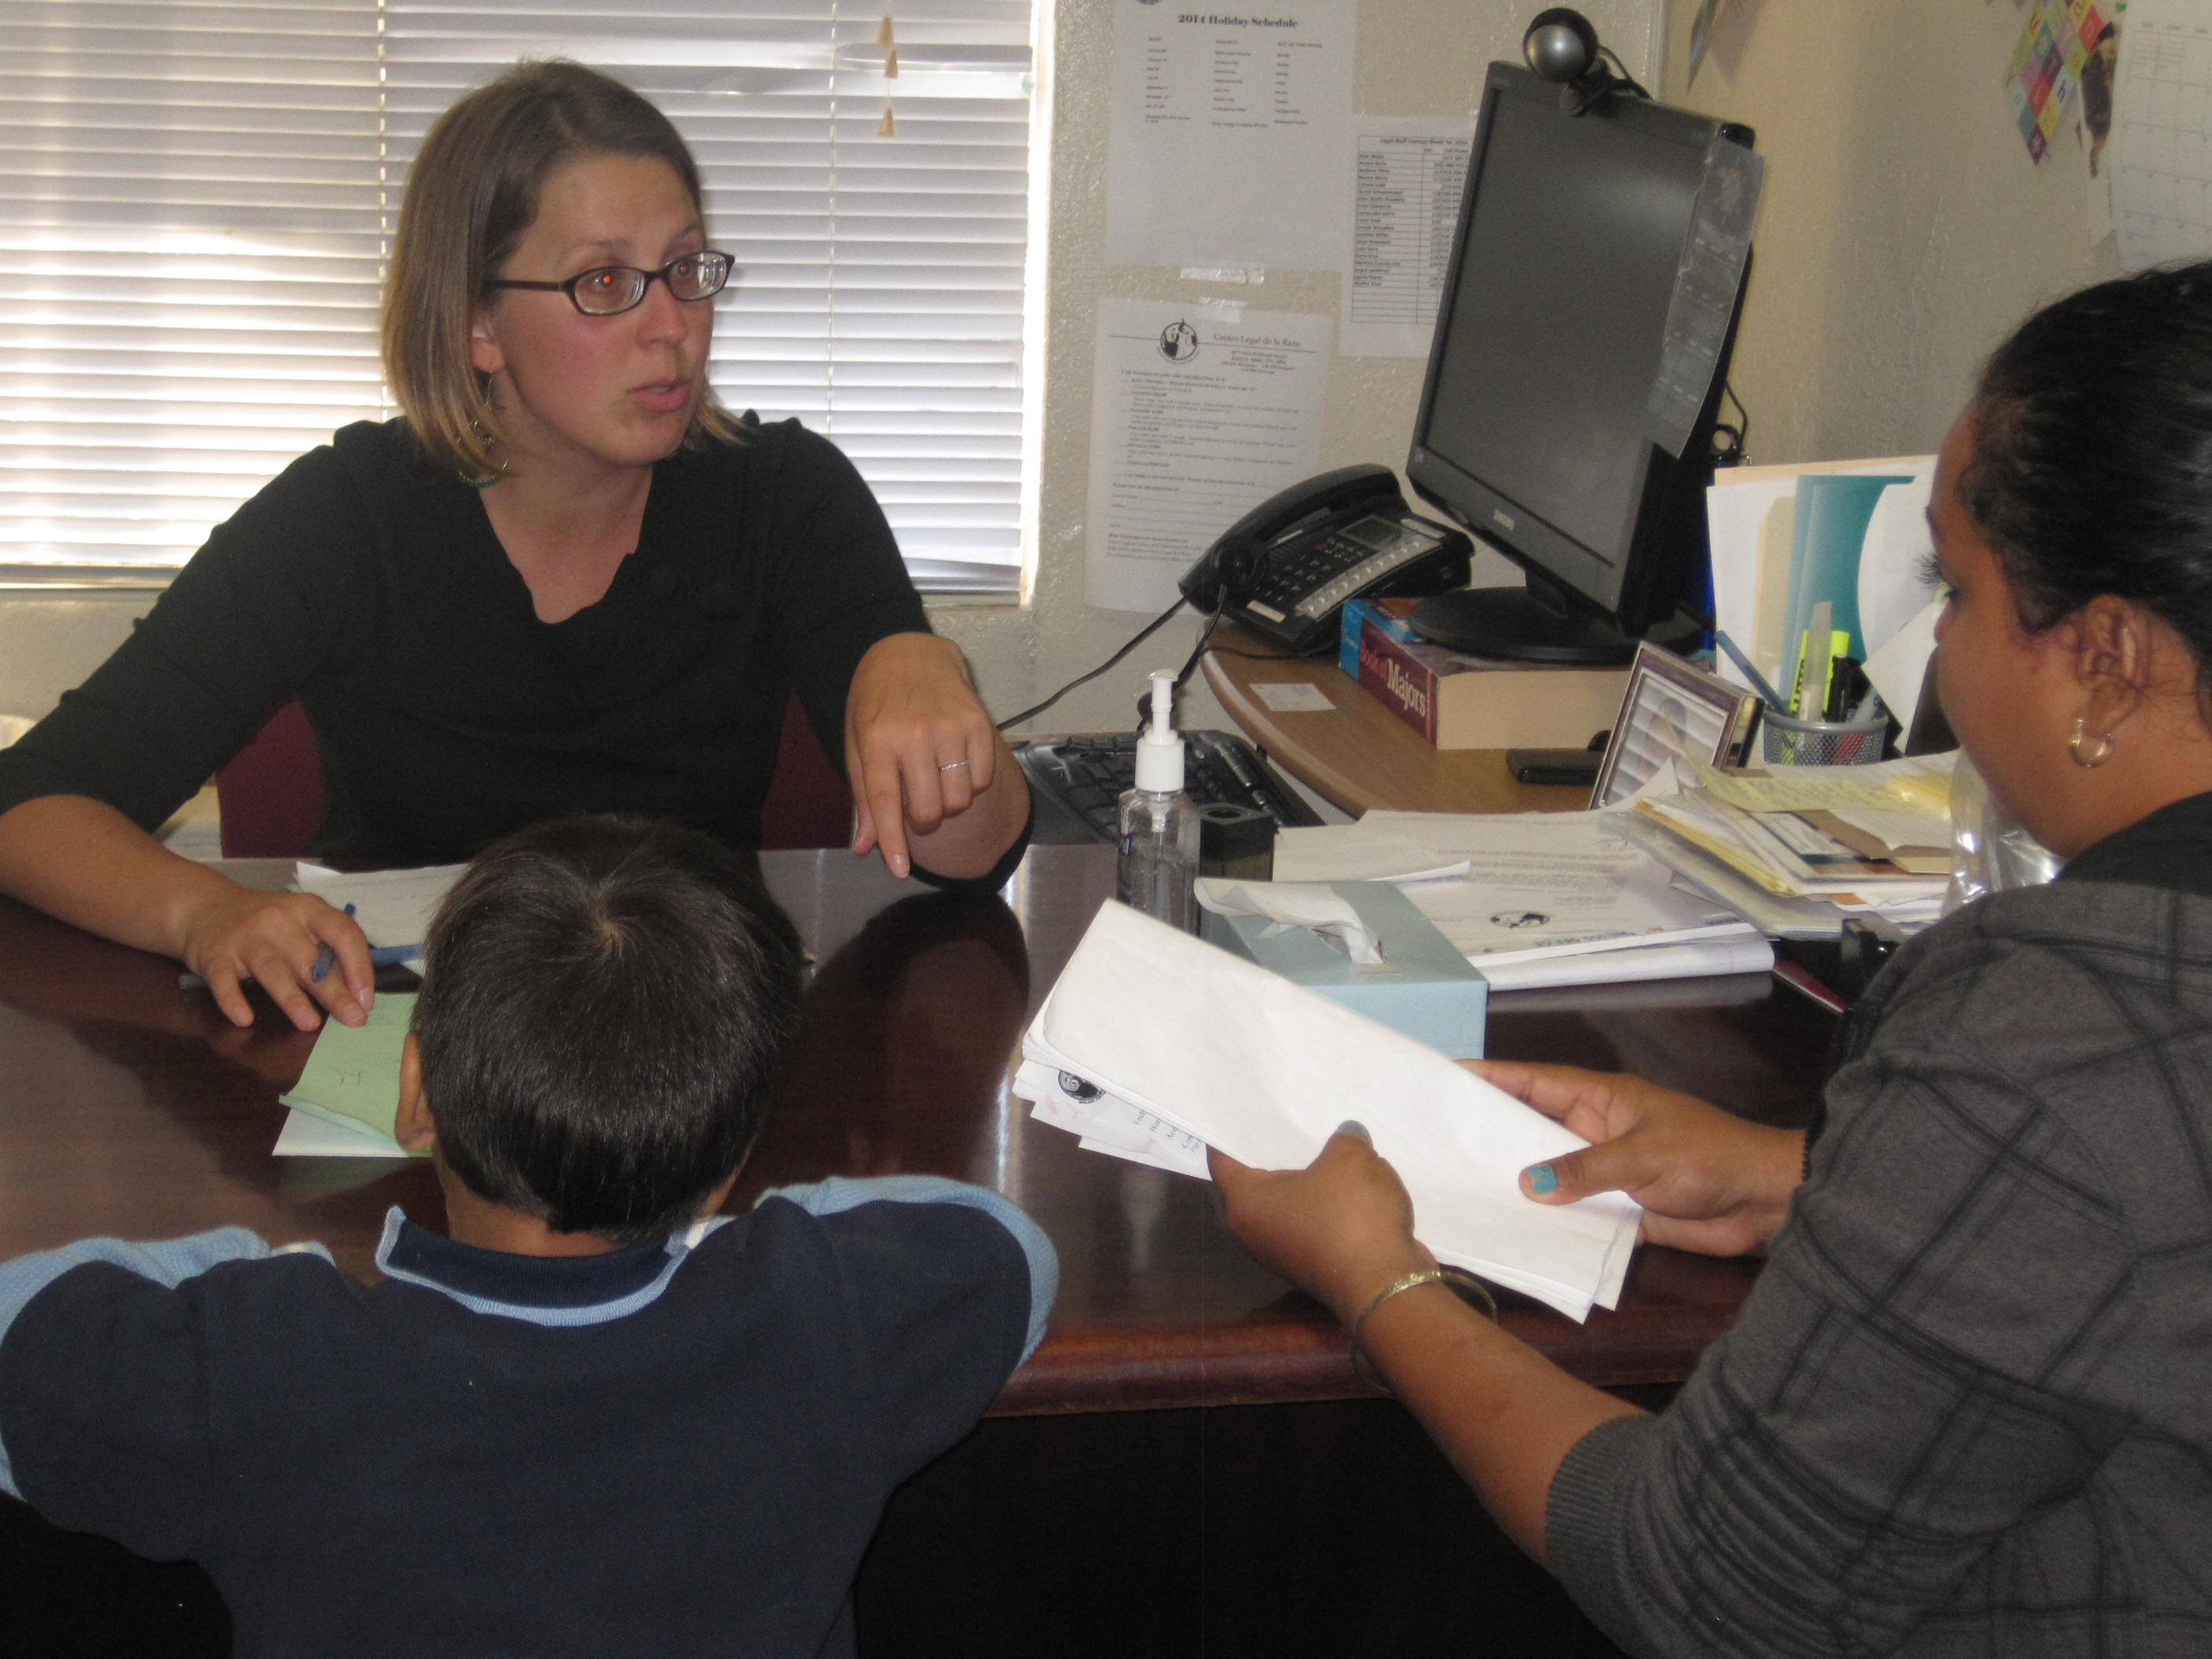 Immigration attorney Eleni Wolfe-Roubatis meets with a tiny client and his mom at Centro Legal de la Raza. (KQED/Zaidee Stavely )